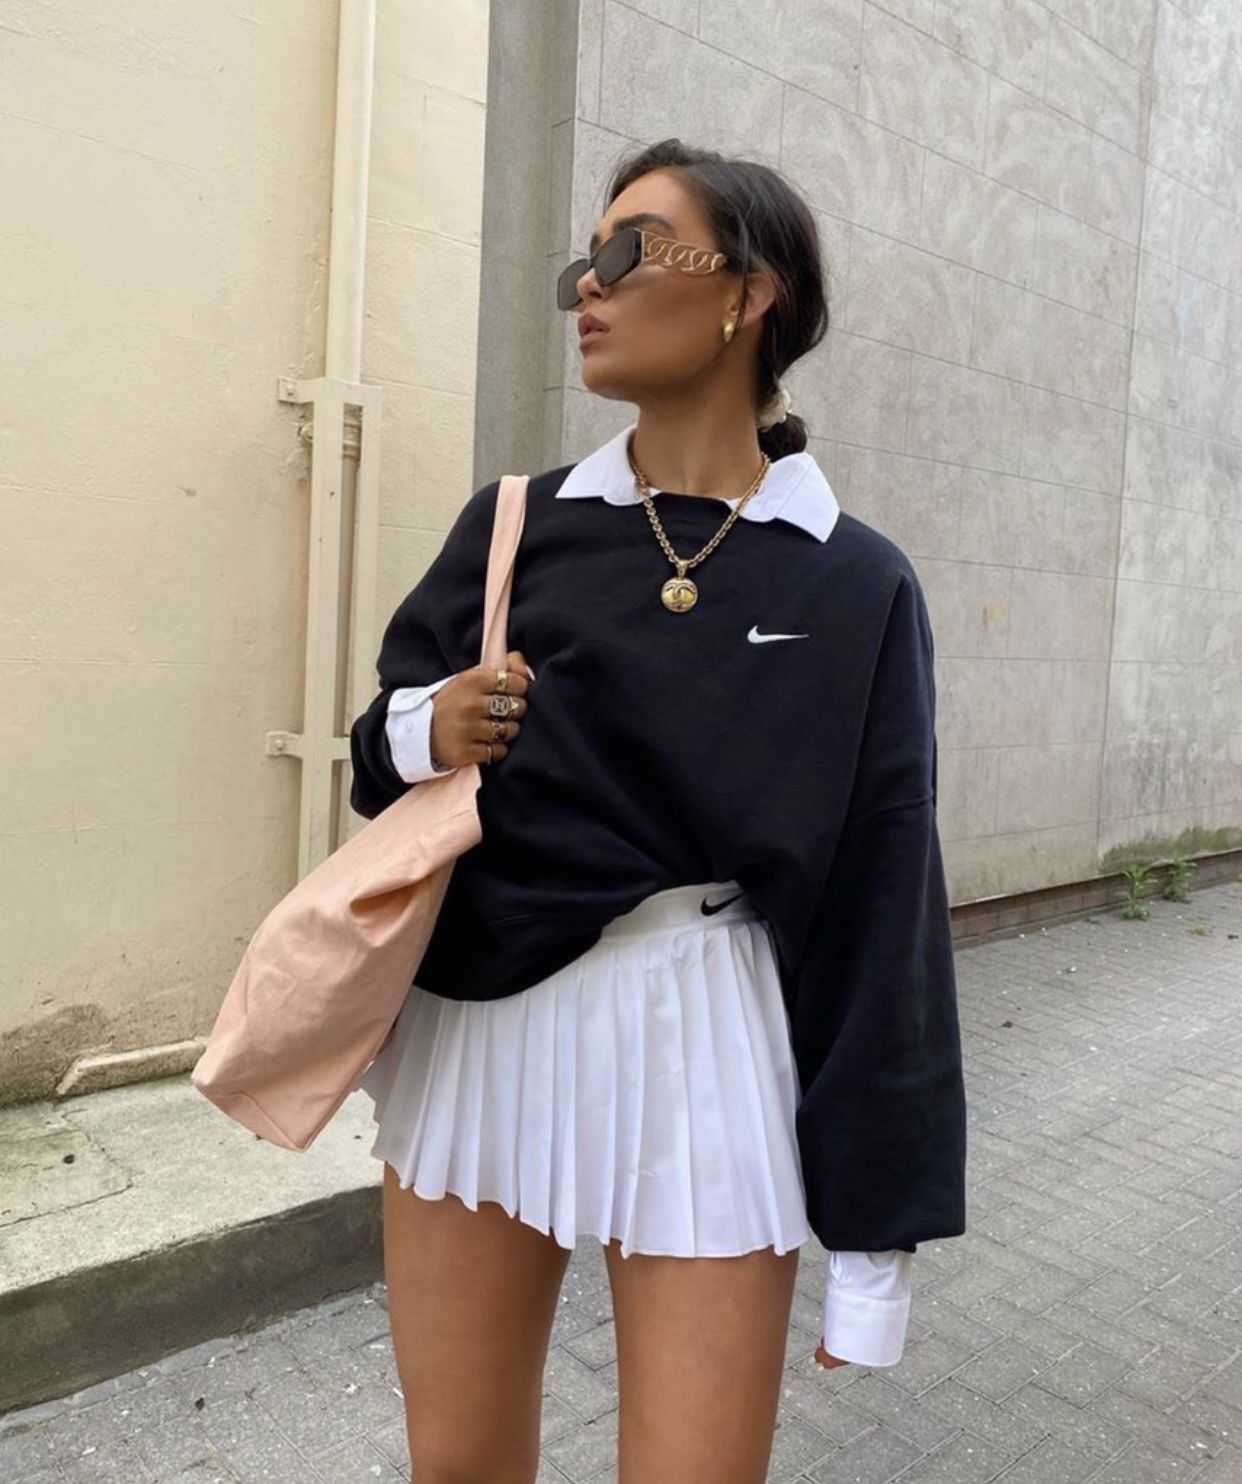 Lissy Roddy In 2020 Tennis Skirt Outfit Cute Casual Outfits Fashion Inspo Outfits